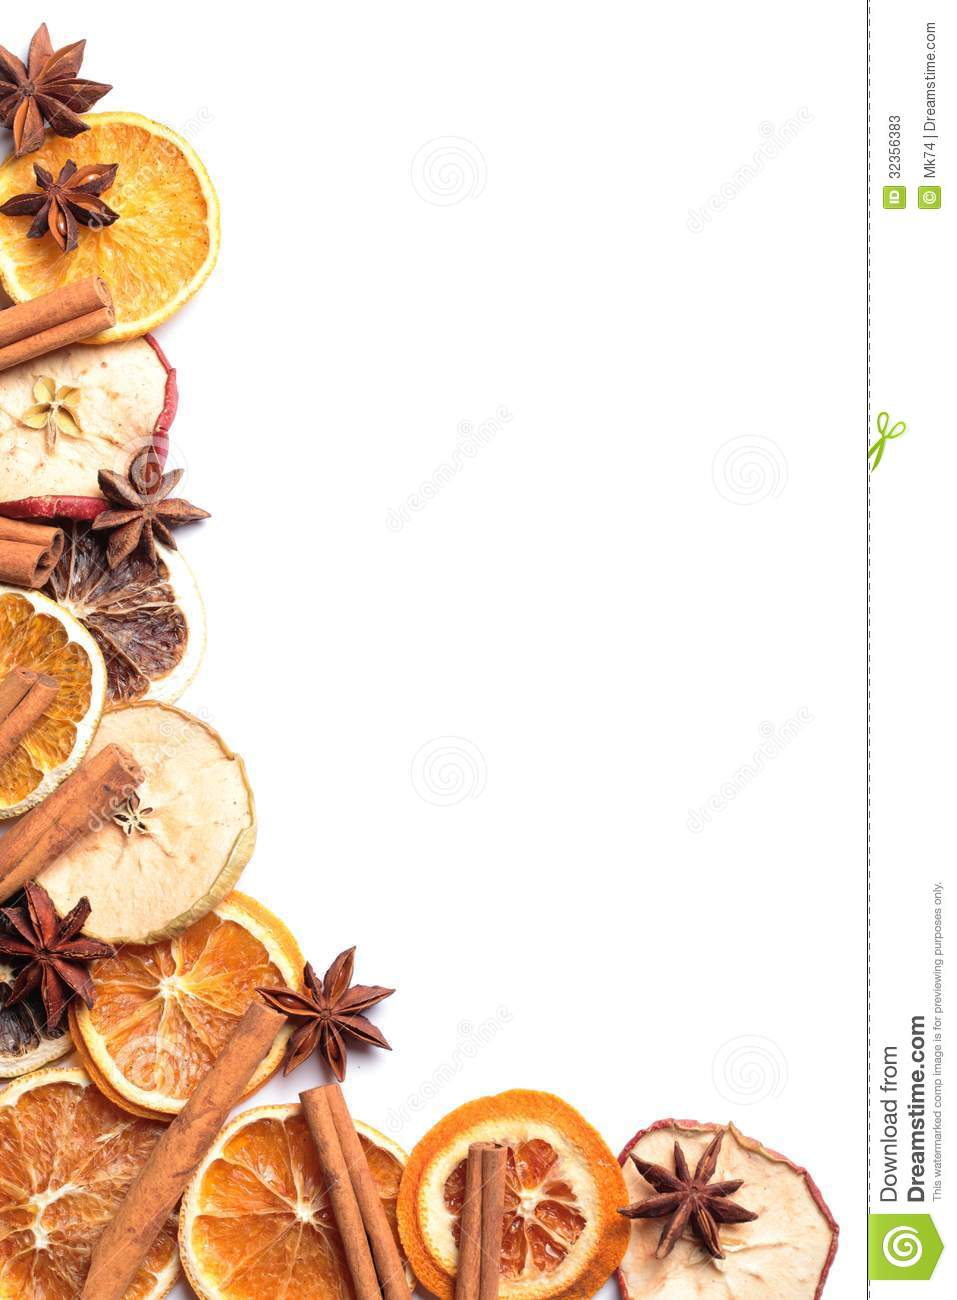 Food frame stock image. Image of up, orange, vertical - 32356383